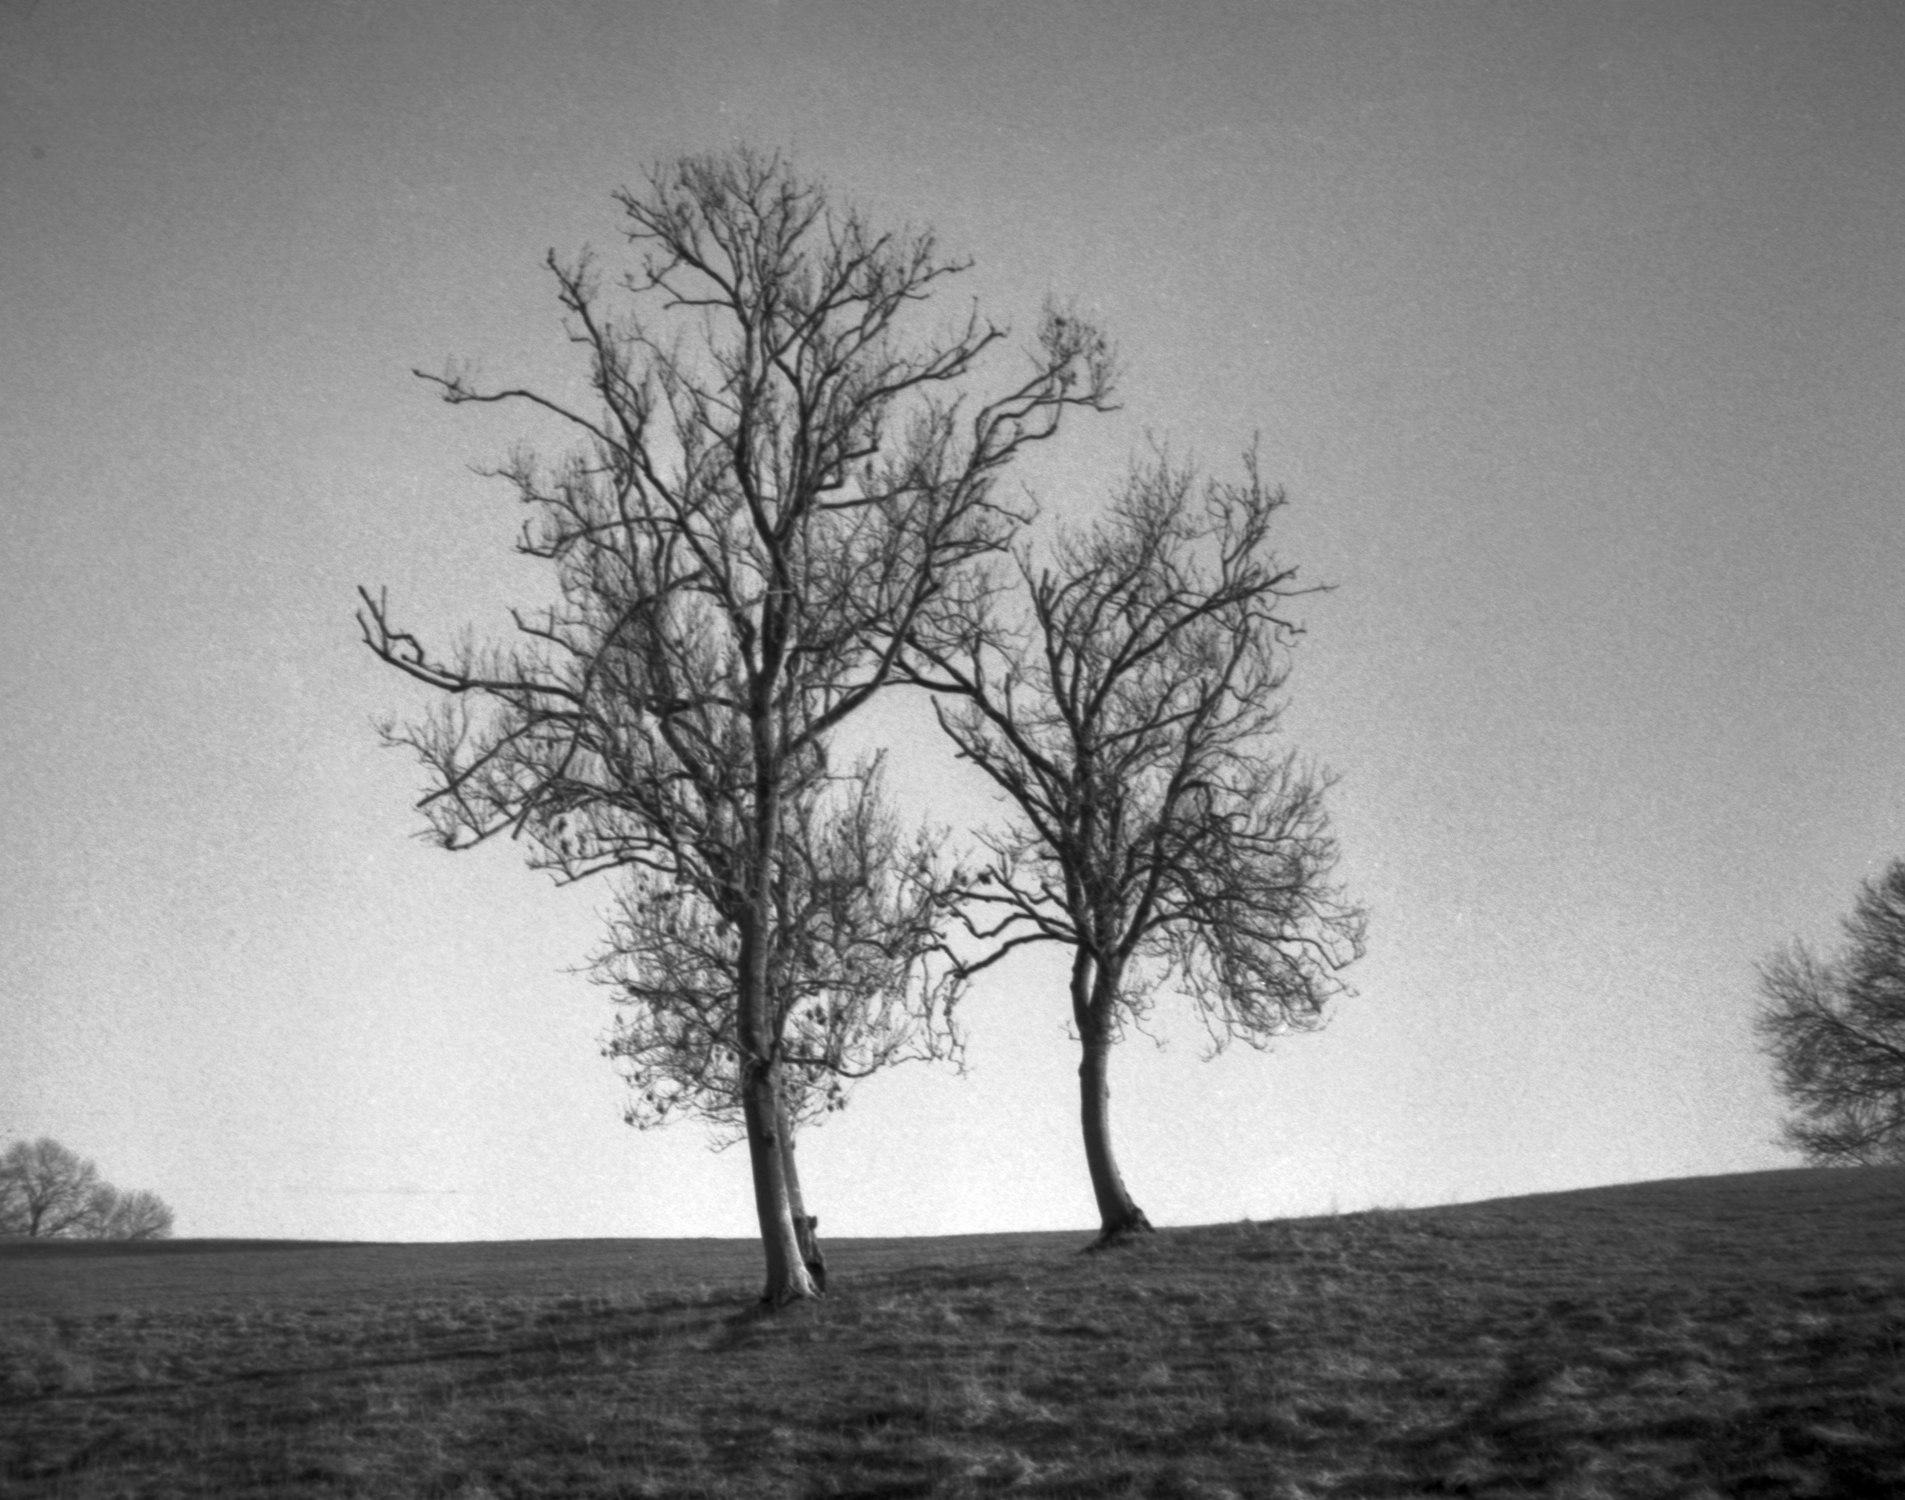 Two trees on hill (Pic: Will Park)